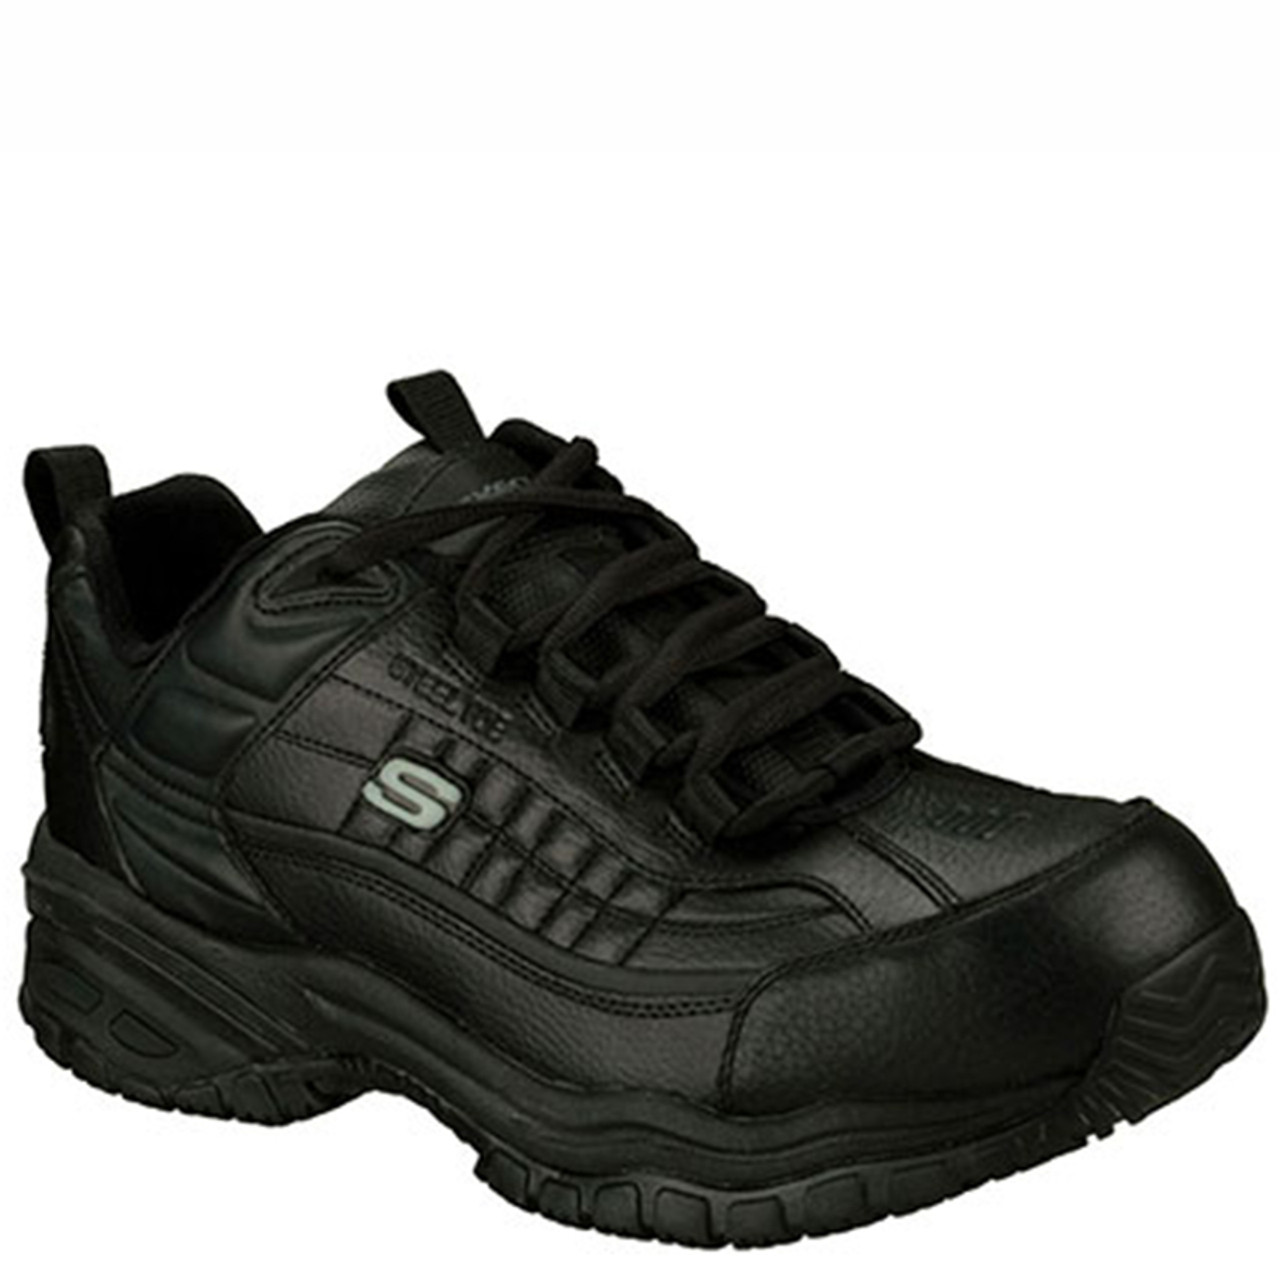 e7fa068205acf Skechers 76760 Soft Stride Steel Toe Slip Resistant Work Shoes